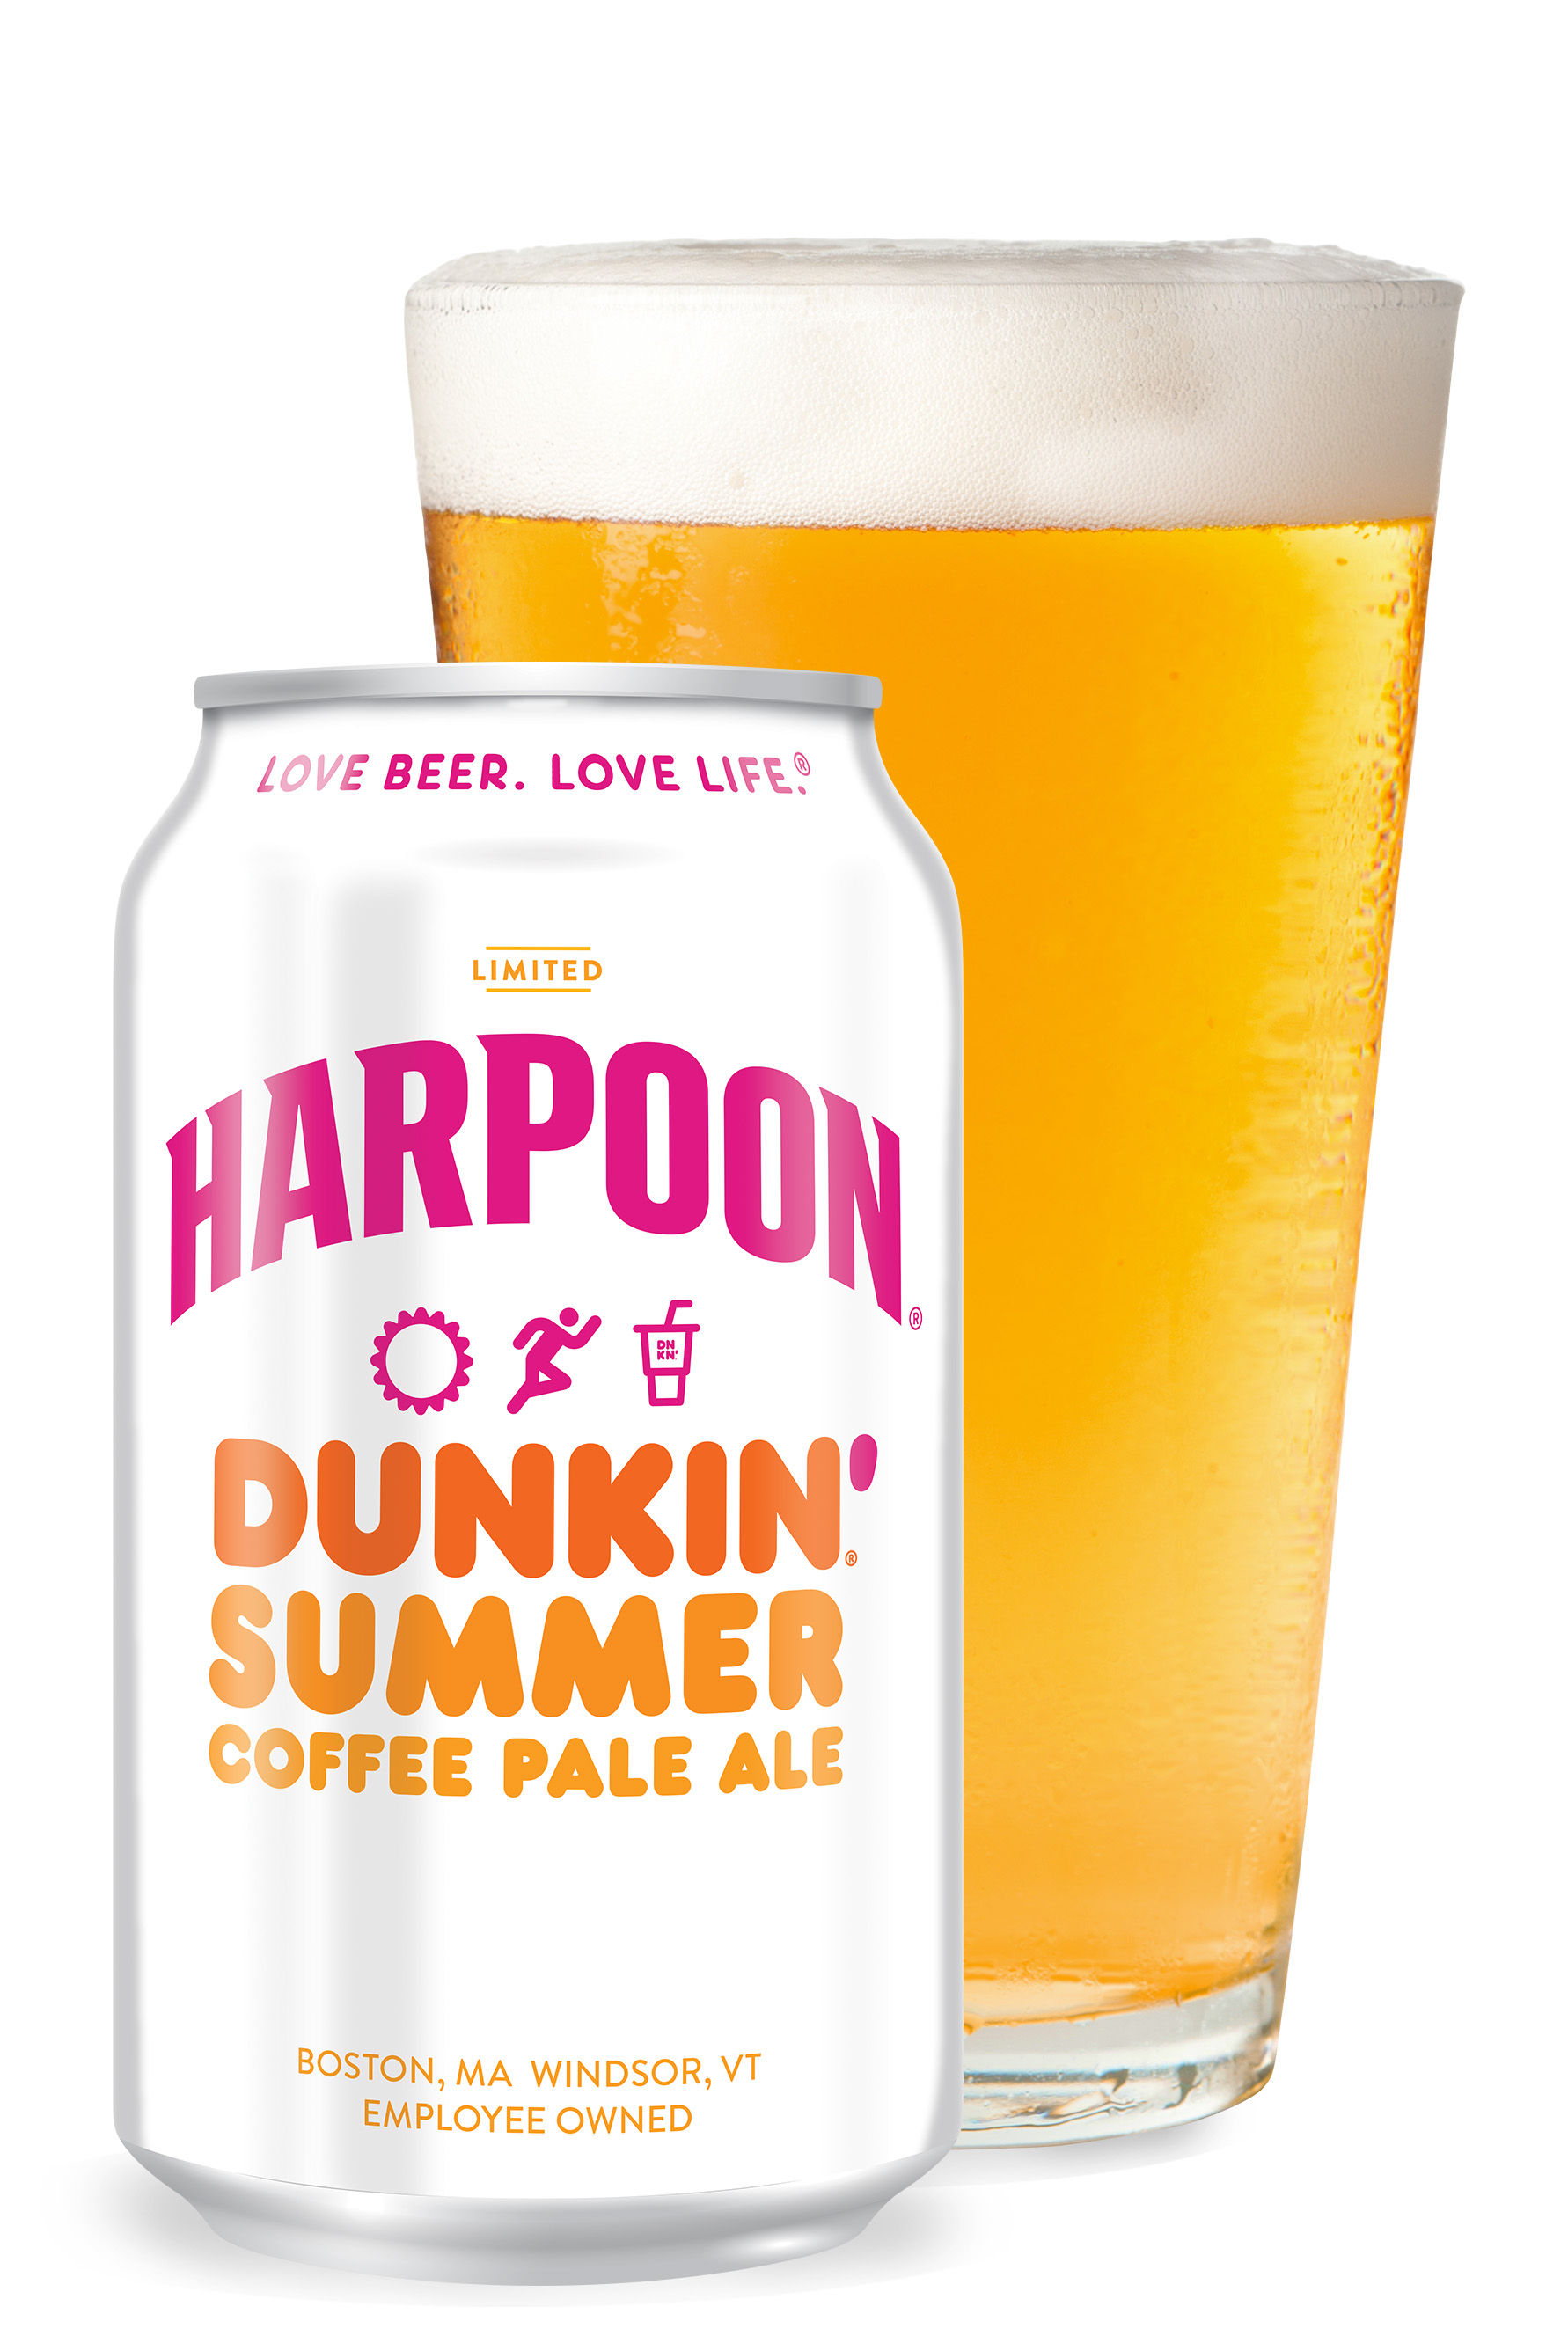 c3aede14b747 Harpoon Dunkin  Summer Coffee Pale Ale marks the second craft beer created  in partnership between these two iconic American beverage brands.